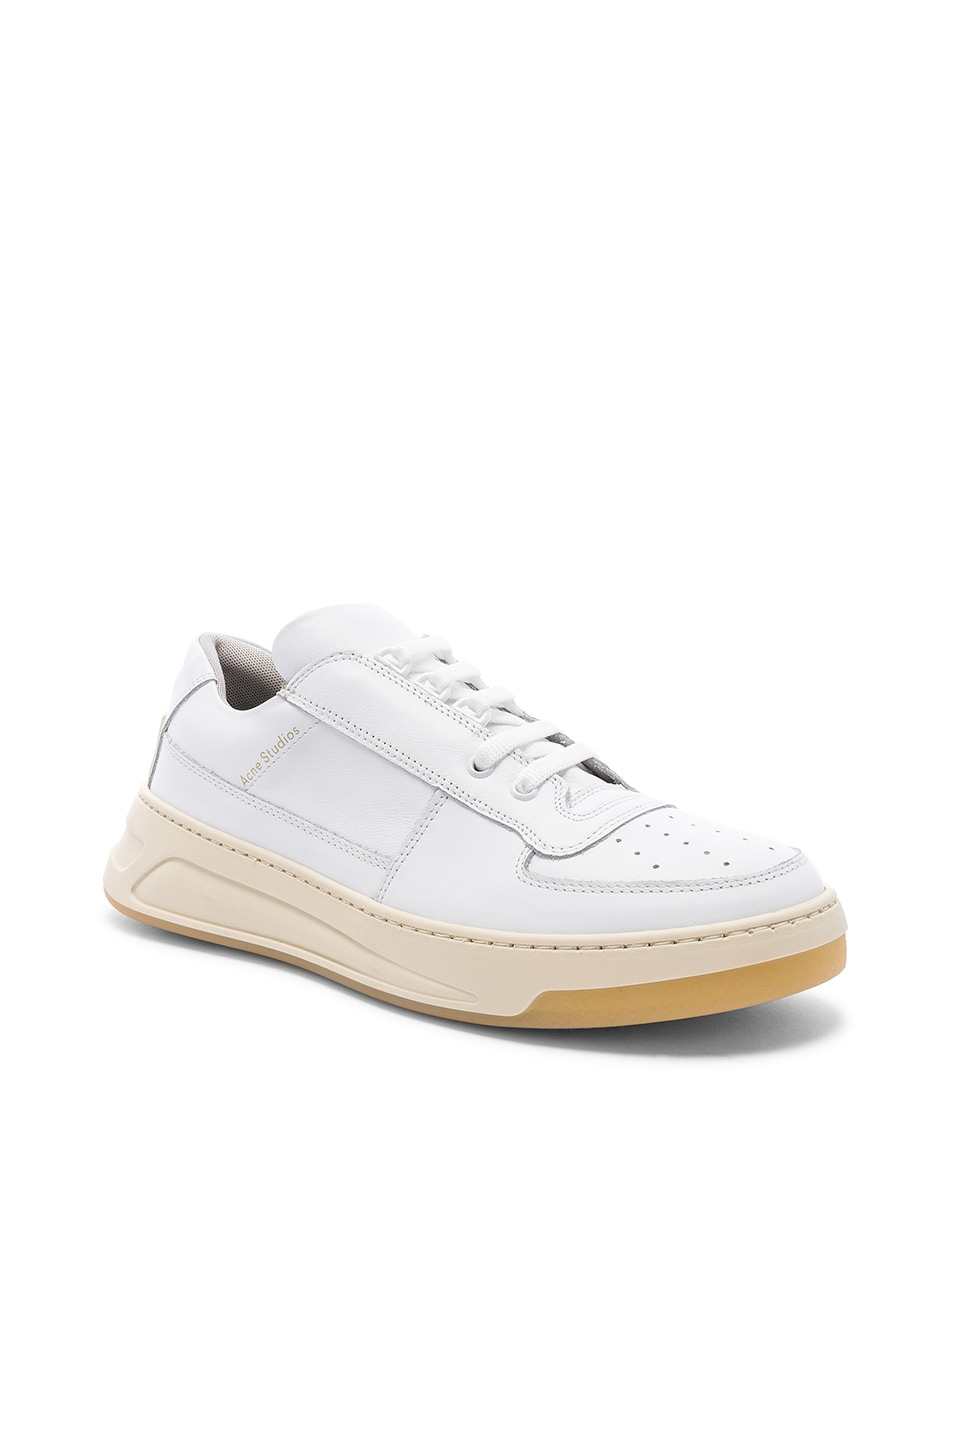 Image 1 of Acne Studios Perey Lace Up Sneakers in White & White